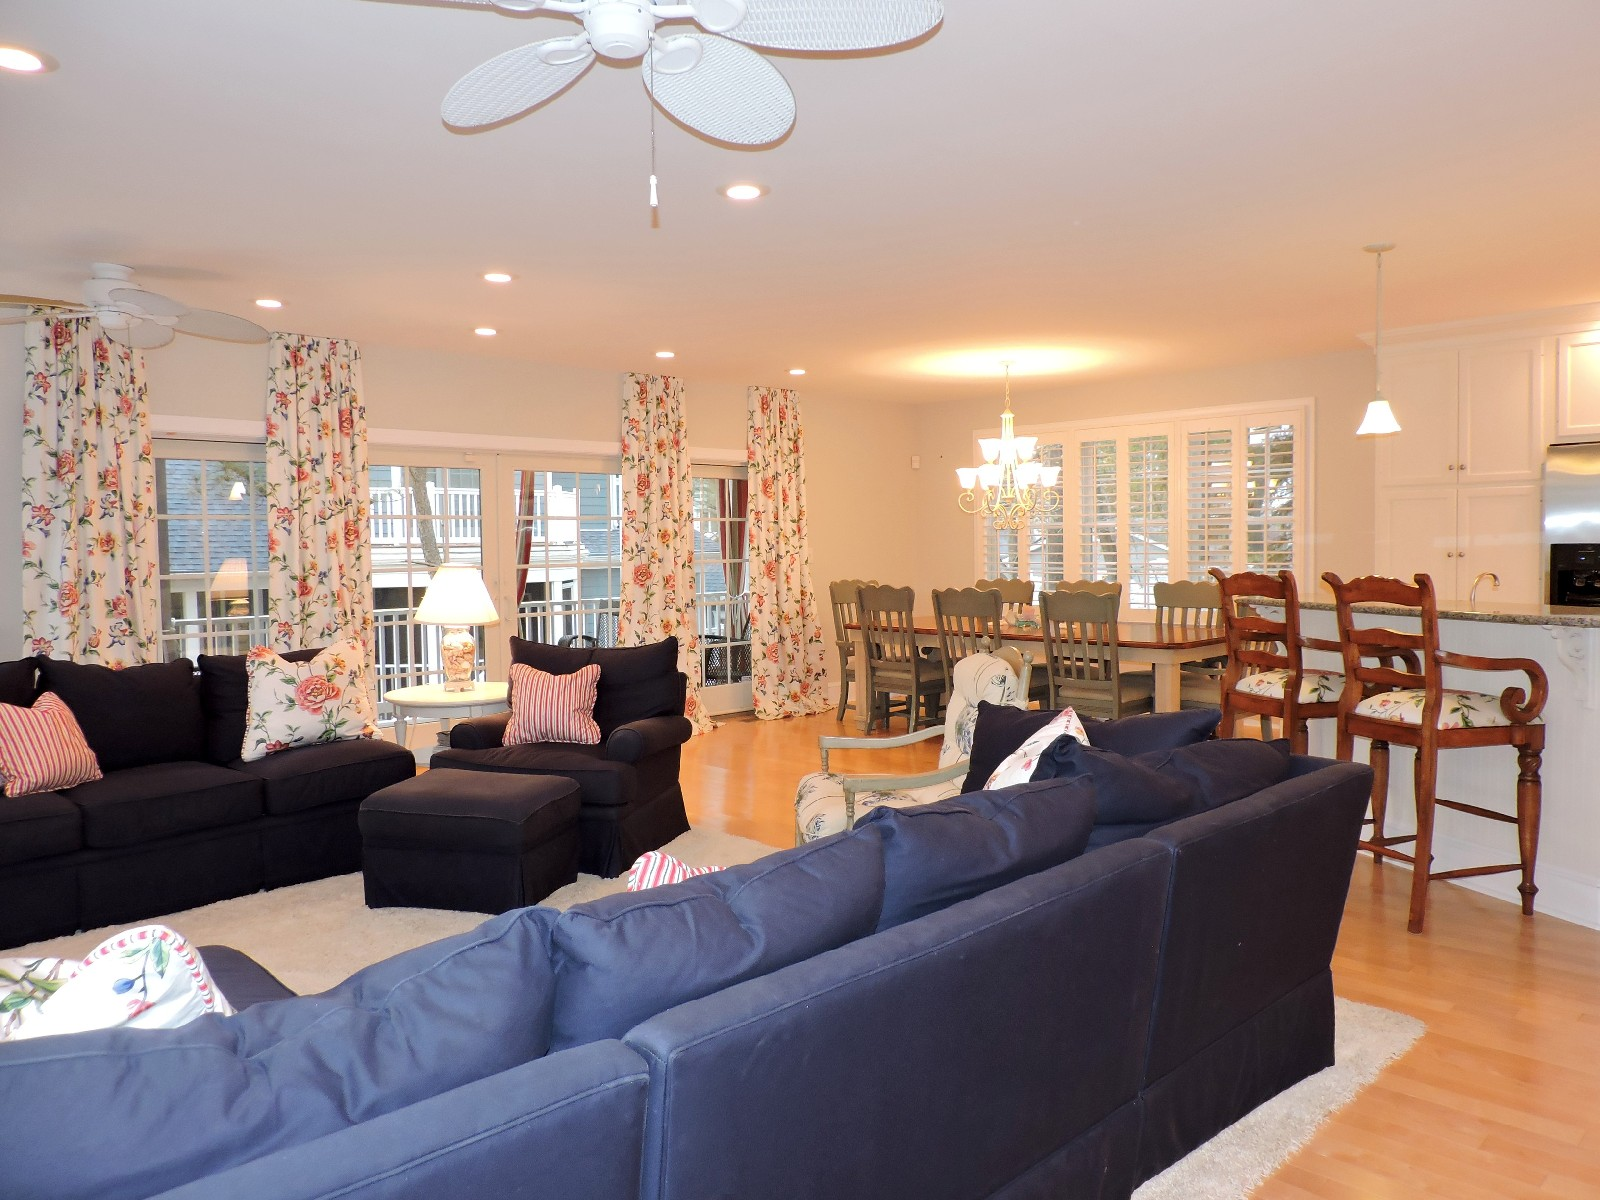 Single Family Home for Sale at 673 Evans Avenue , Bethany Beach, DE 19930 673 Evans Avenue Bethany Beach, Delaware, 19930 United States